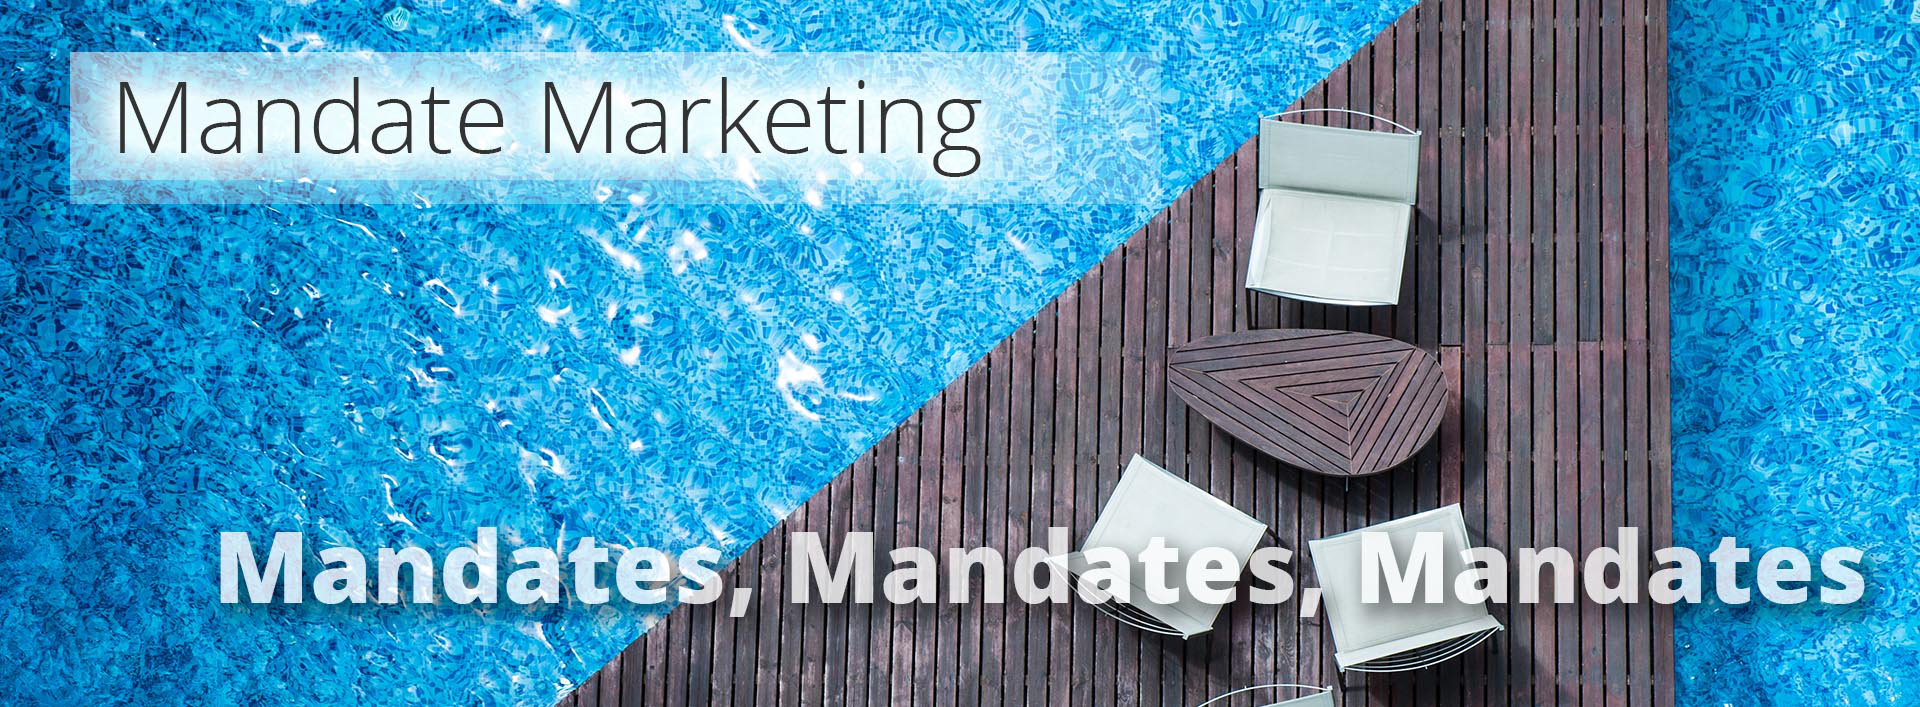 Mandate - Marketing